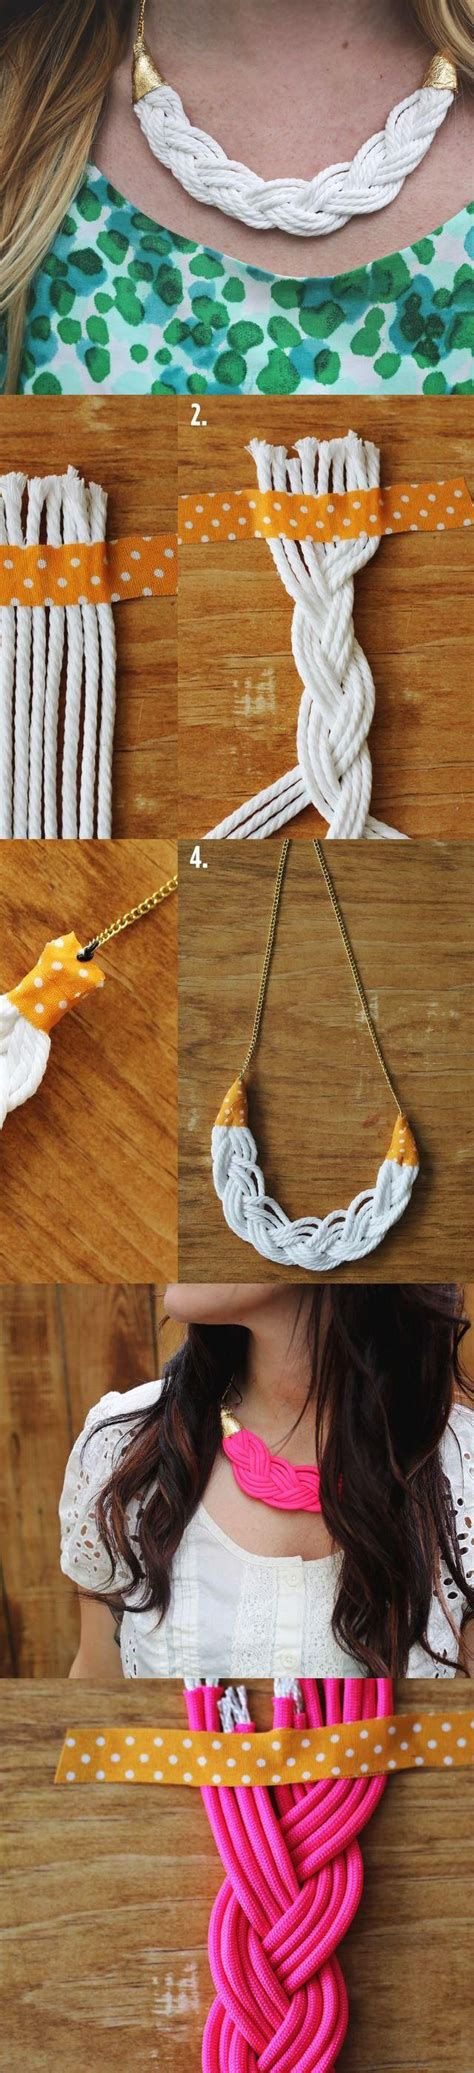 Braid Craft - braid necklace diy jewelry crafts